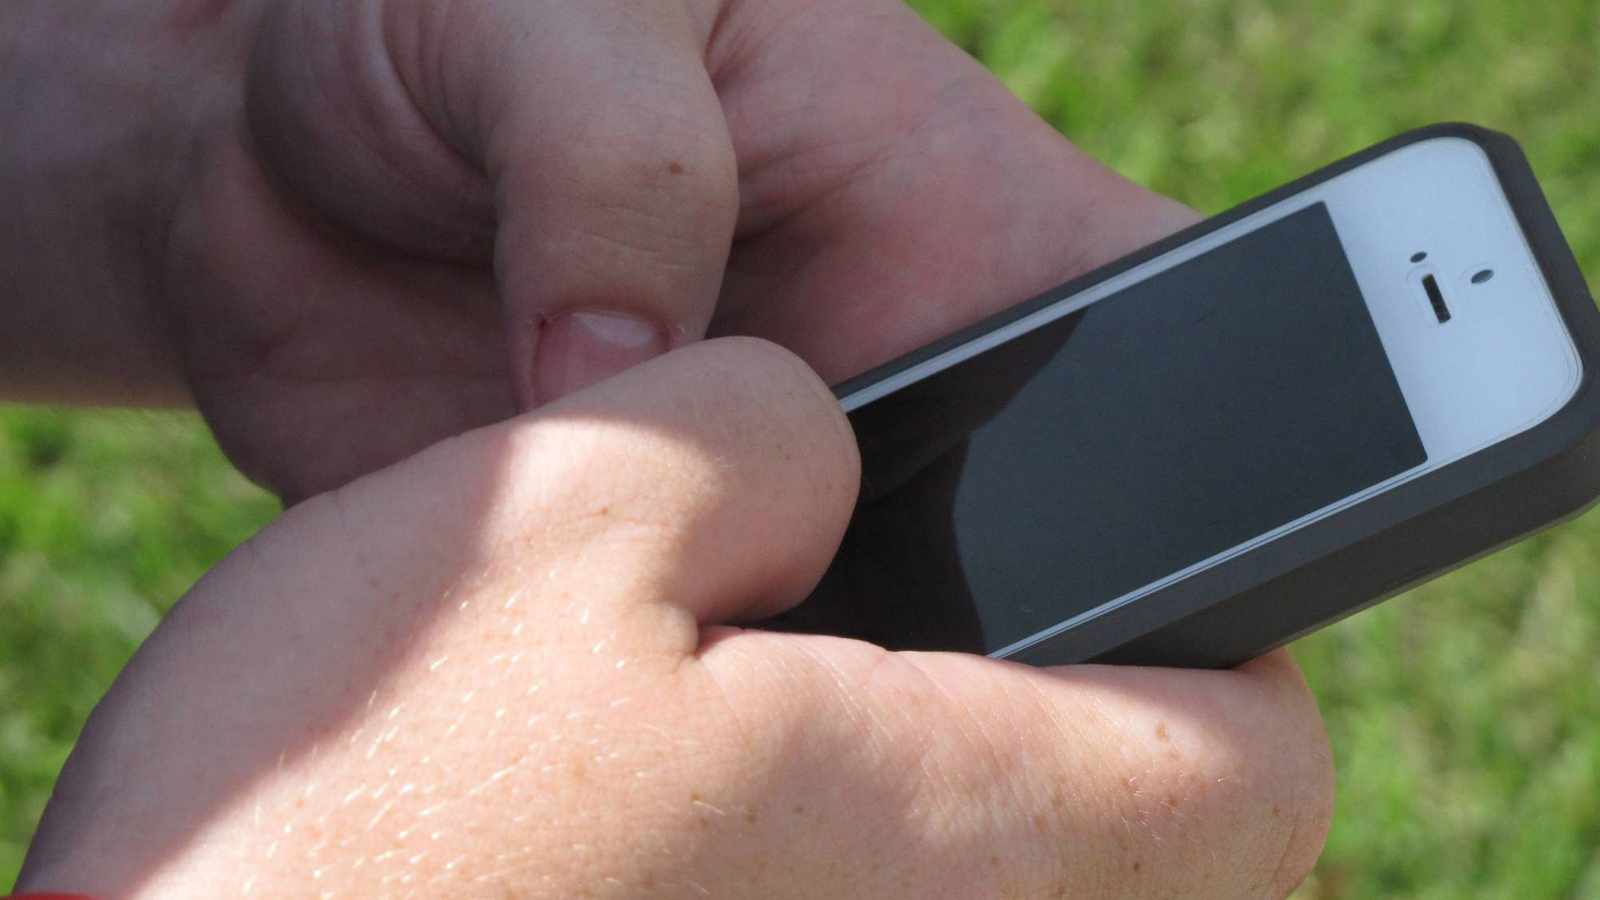 Children as young as 10 now sexting, unaware of consequences